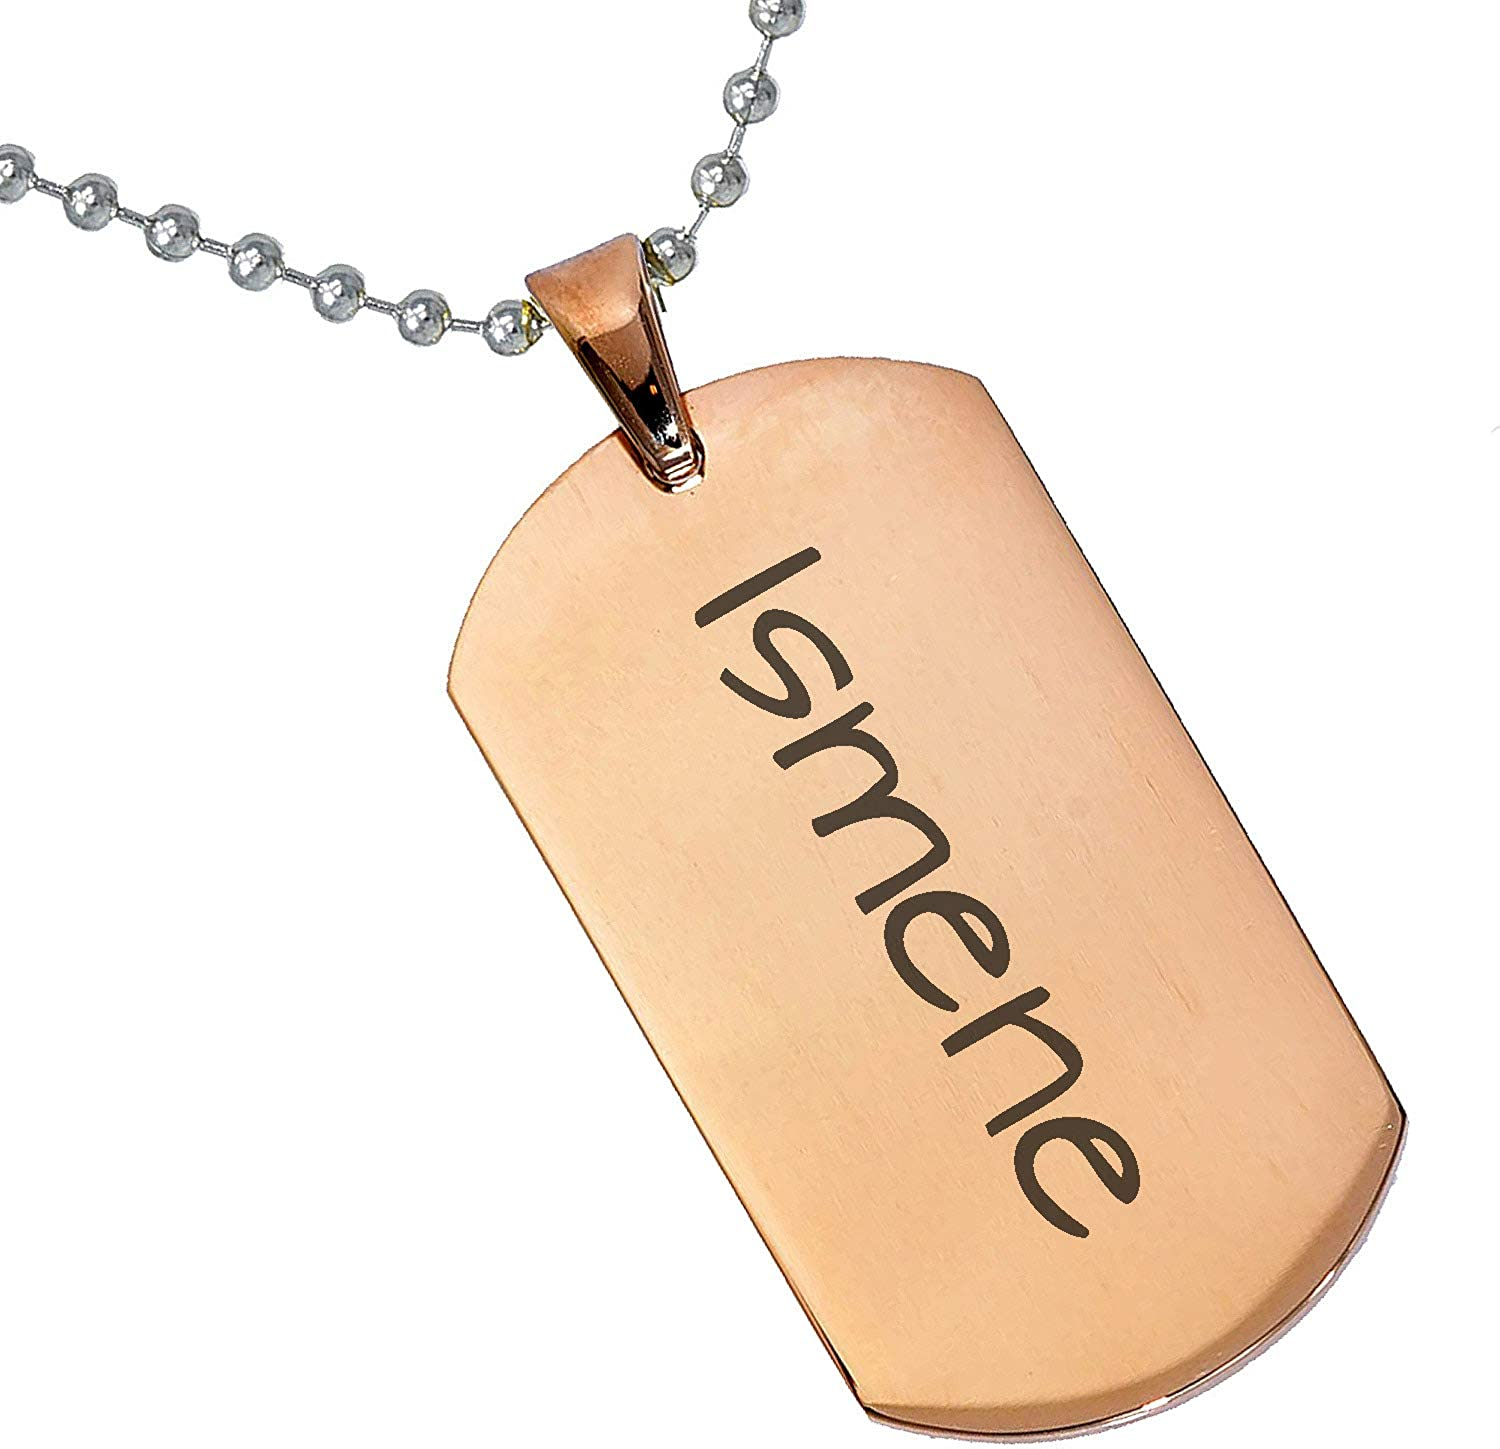 Stainless Steel Silver Gold Black Rose Gold Color Baby Name Ismene Engraved Personalized Gifts For Son Daughter Boyfriend Girlfriend Initial Customizable Pendant Necklace Dog Tags 24 Ball Chain